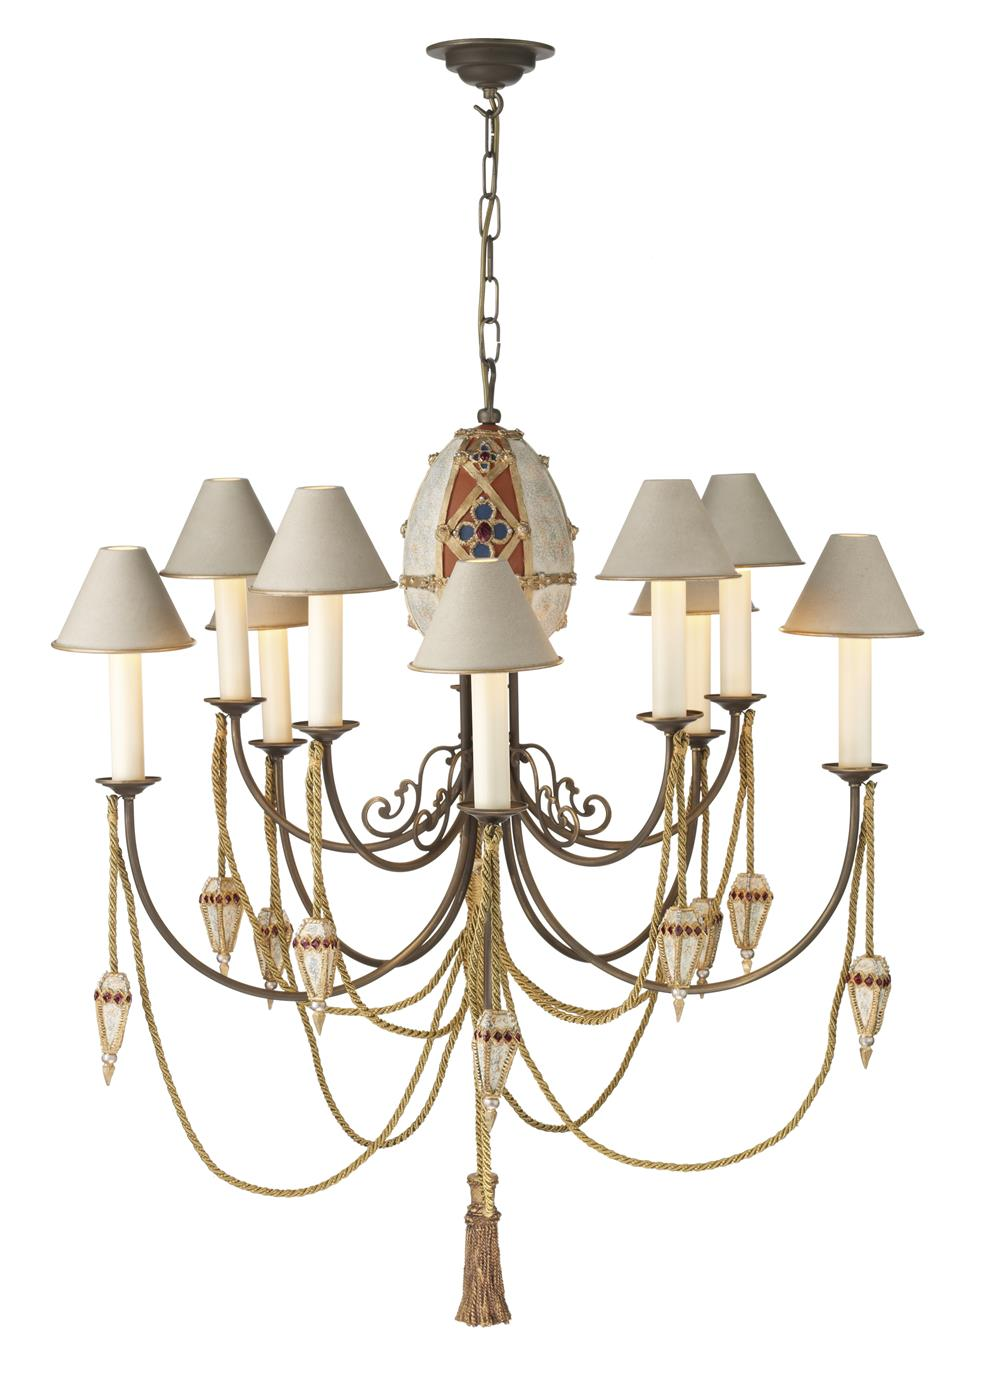 Dar AF10 Anastasia 10 light Chandelier. Fitting only